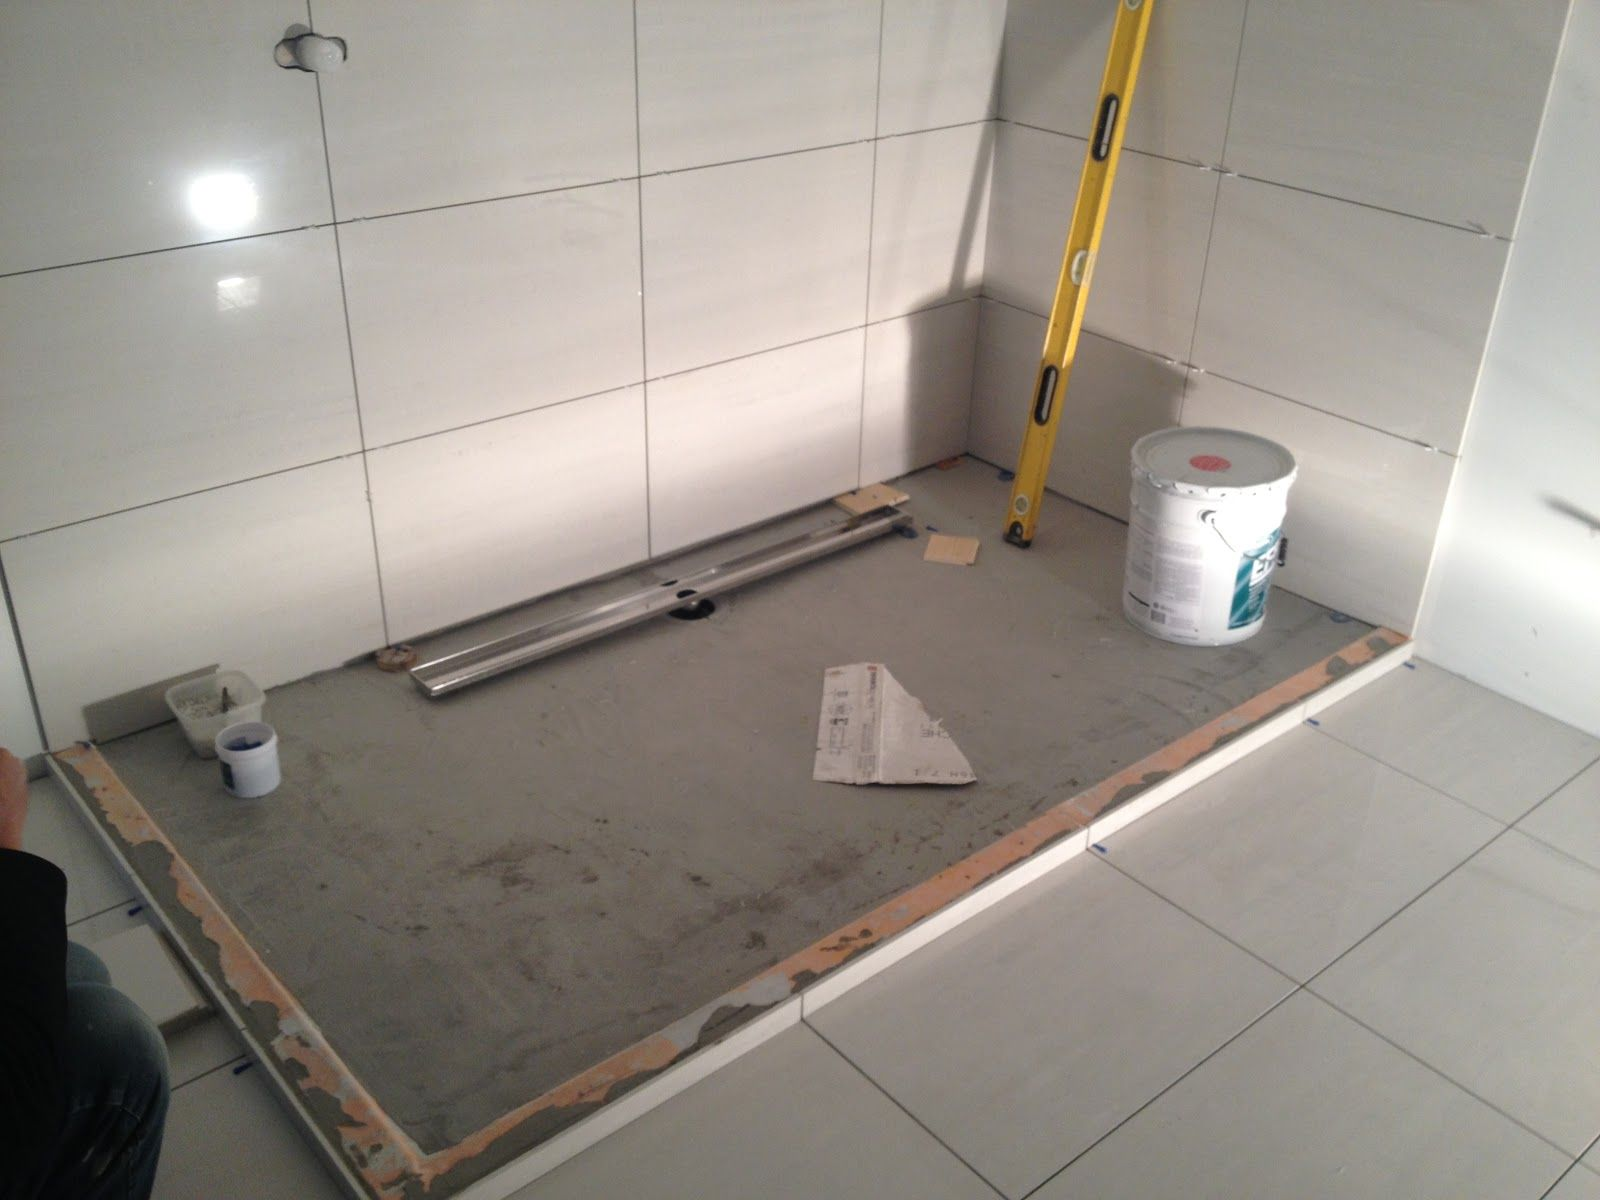 Bathroom Tile Floor Drain : Curb linear shower drains and barrier free